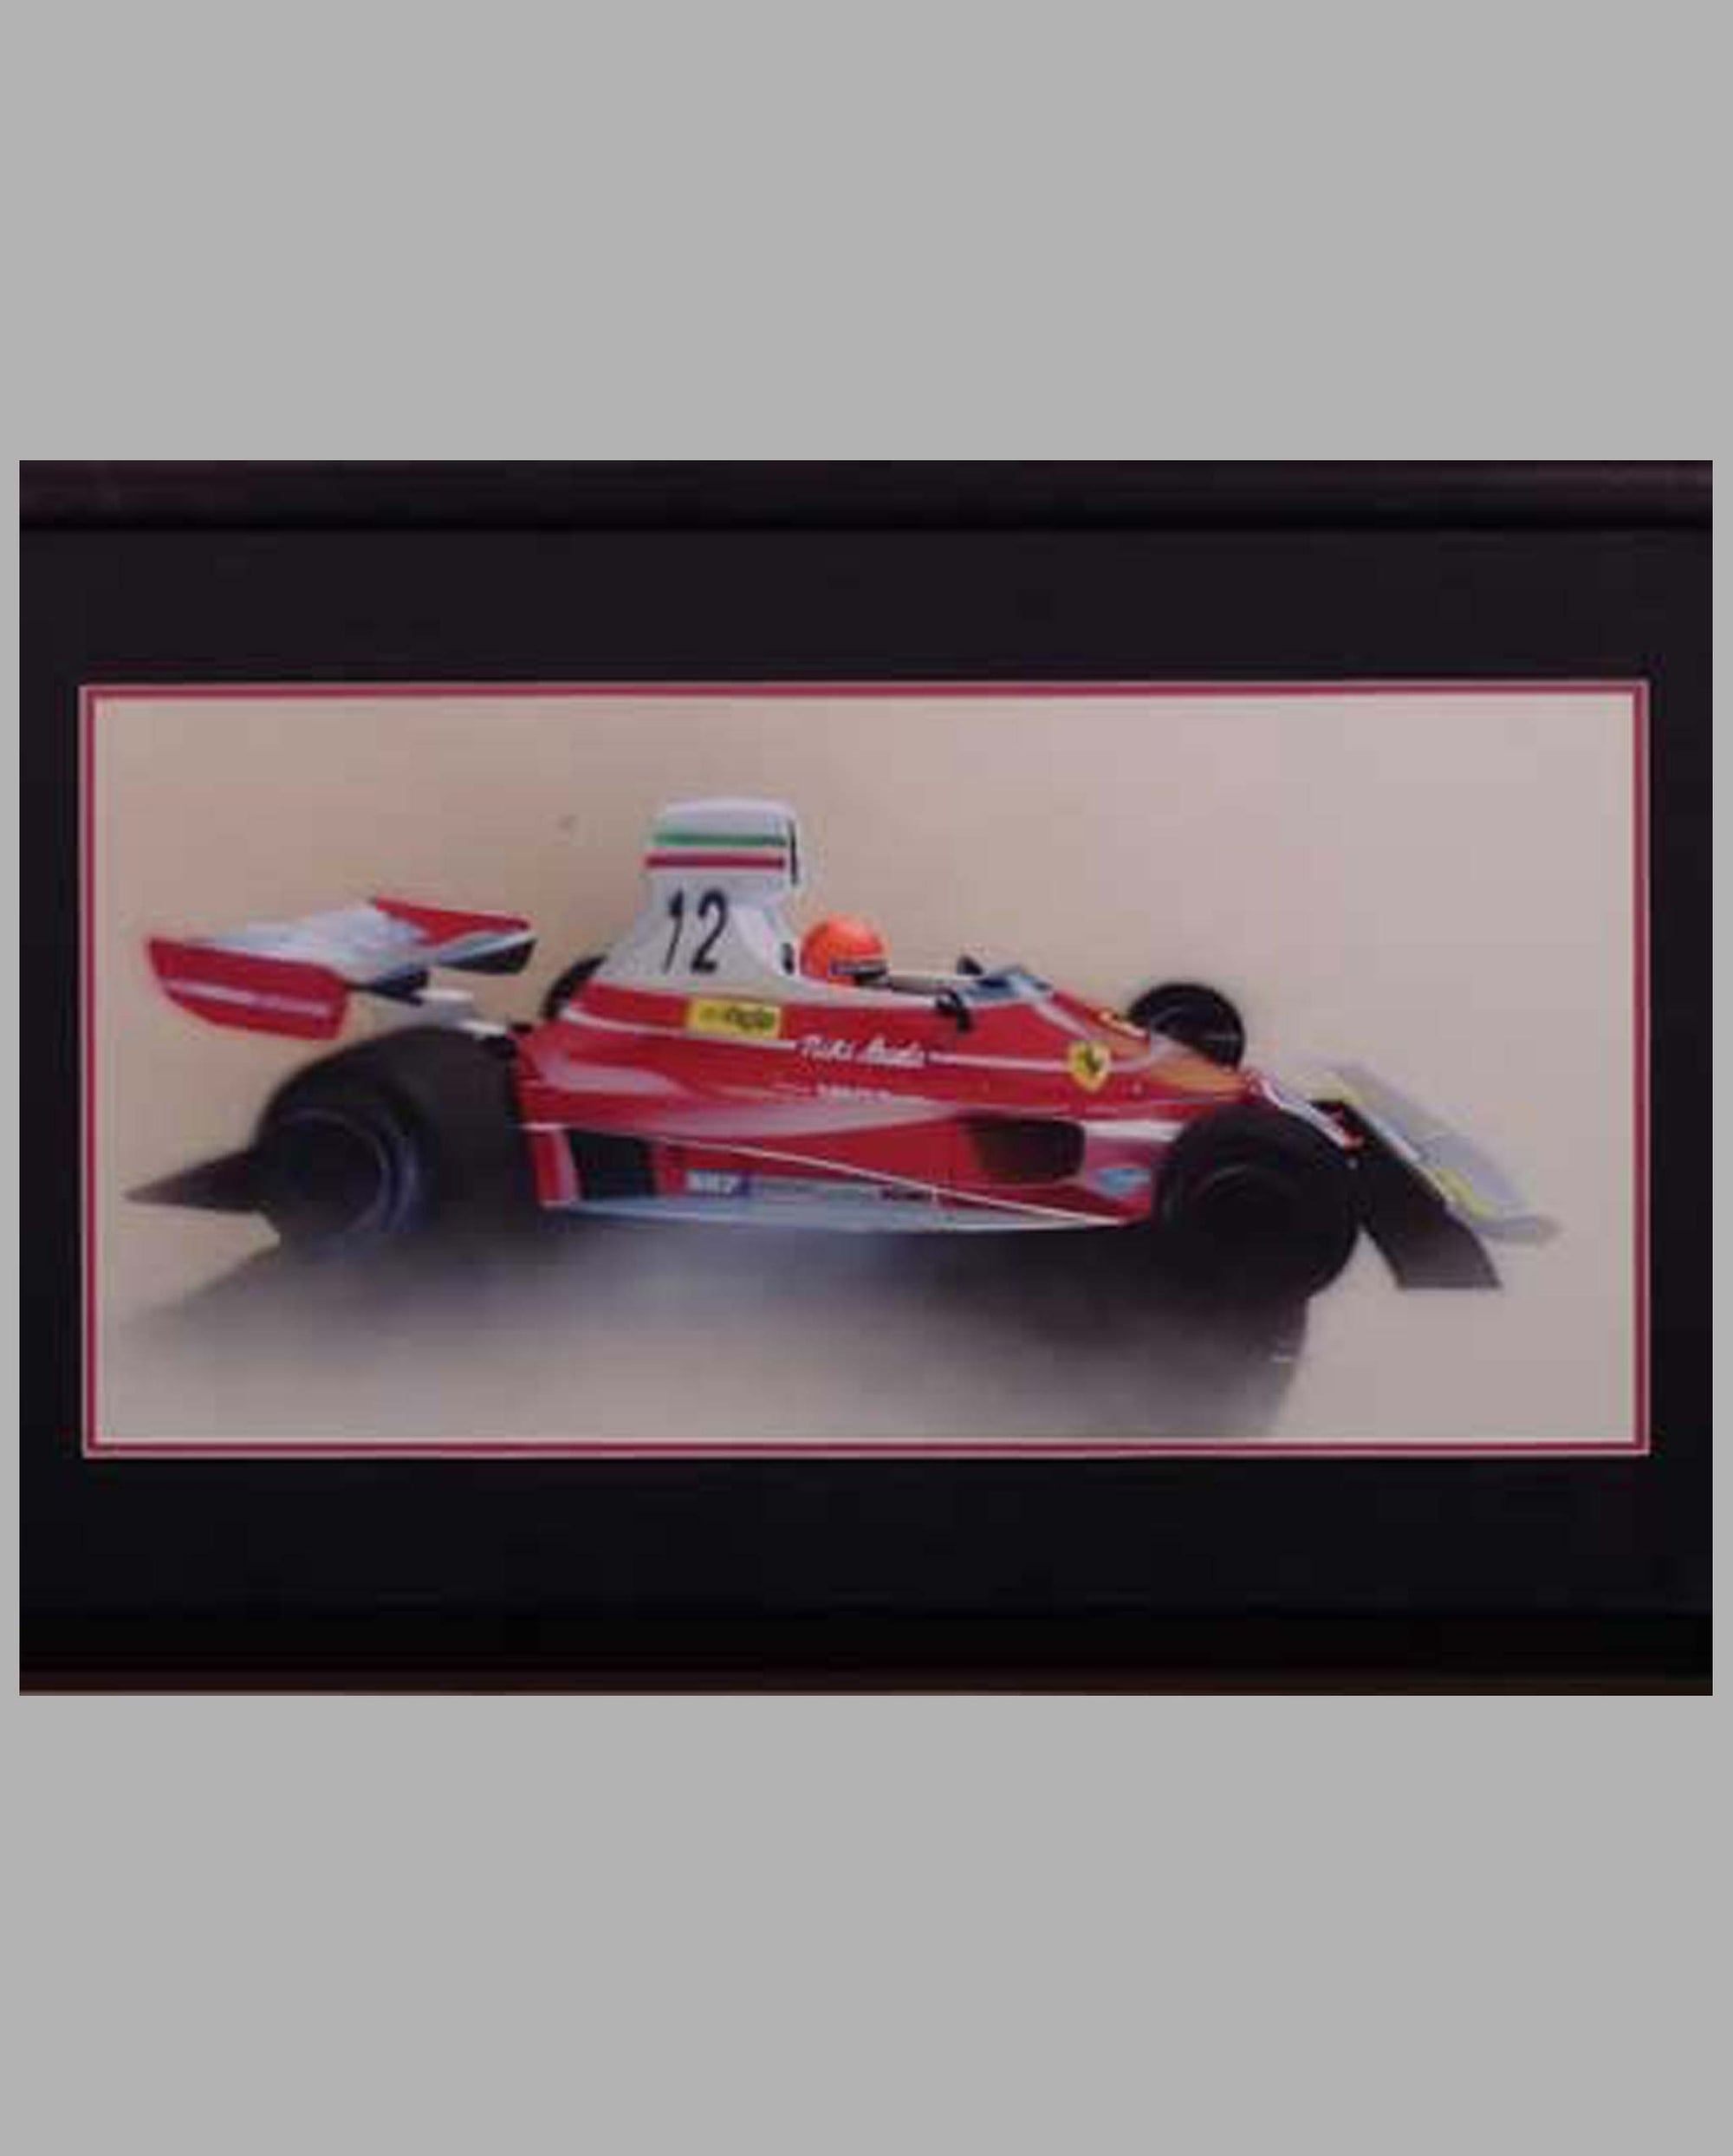 Niki Lauda's Ferrari 312T painting by Thierry Thompson